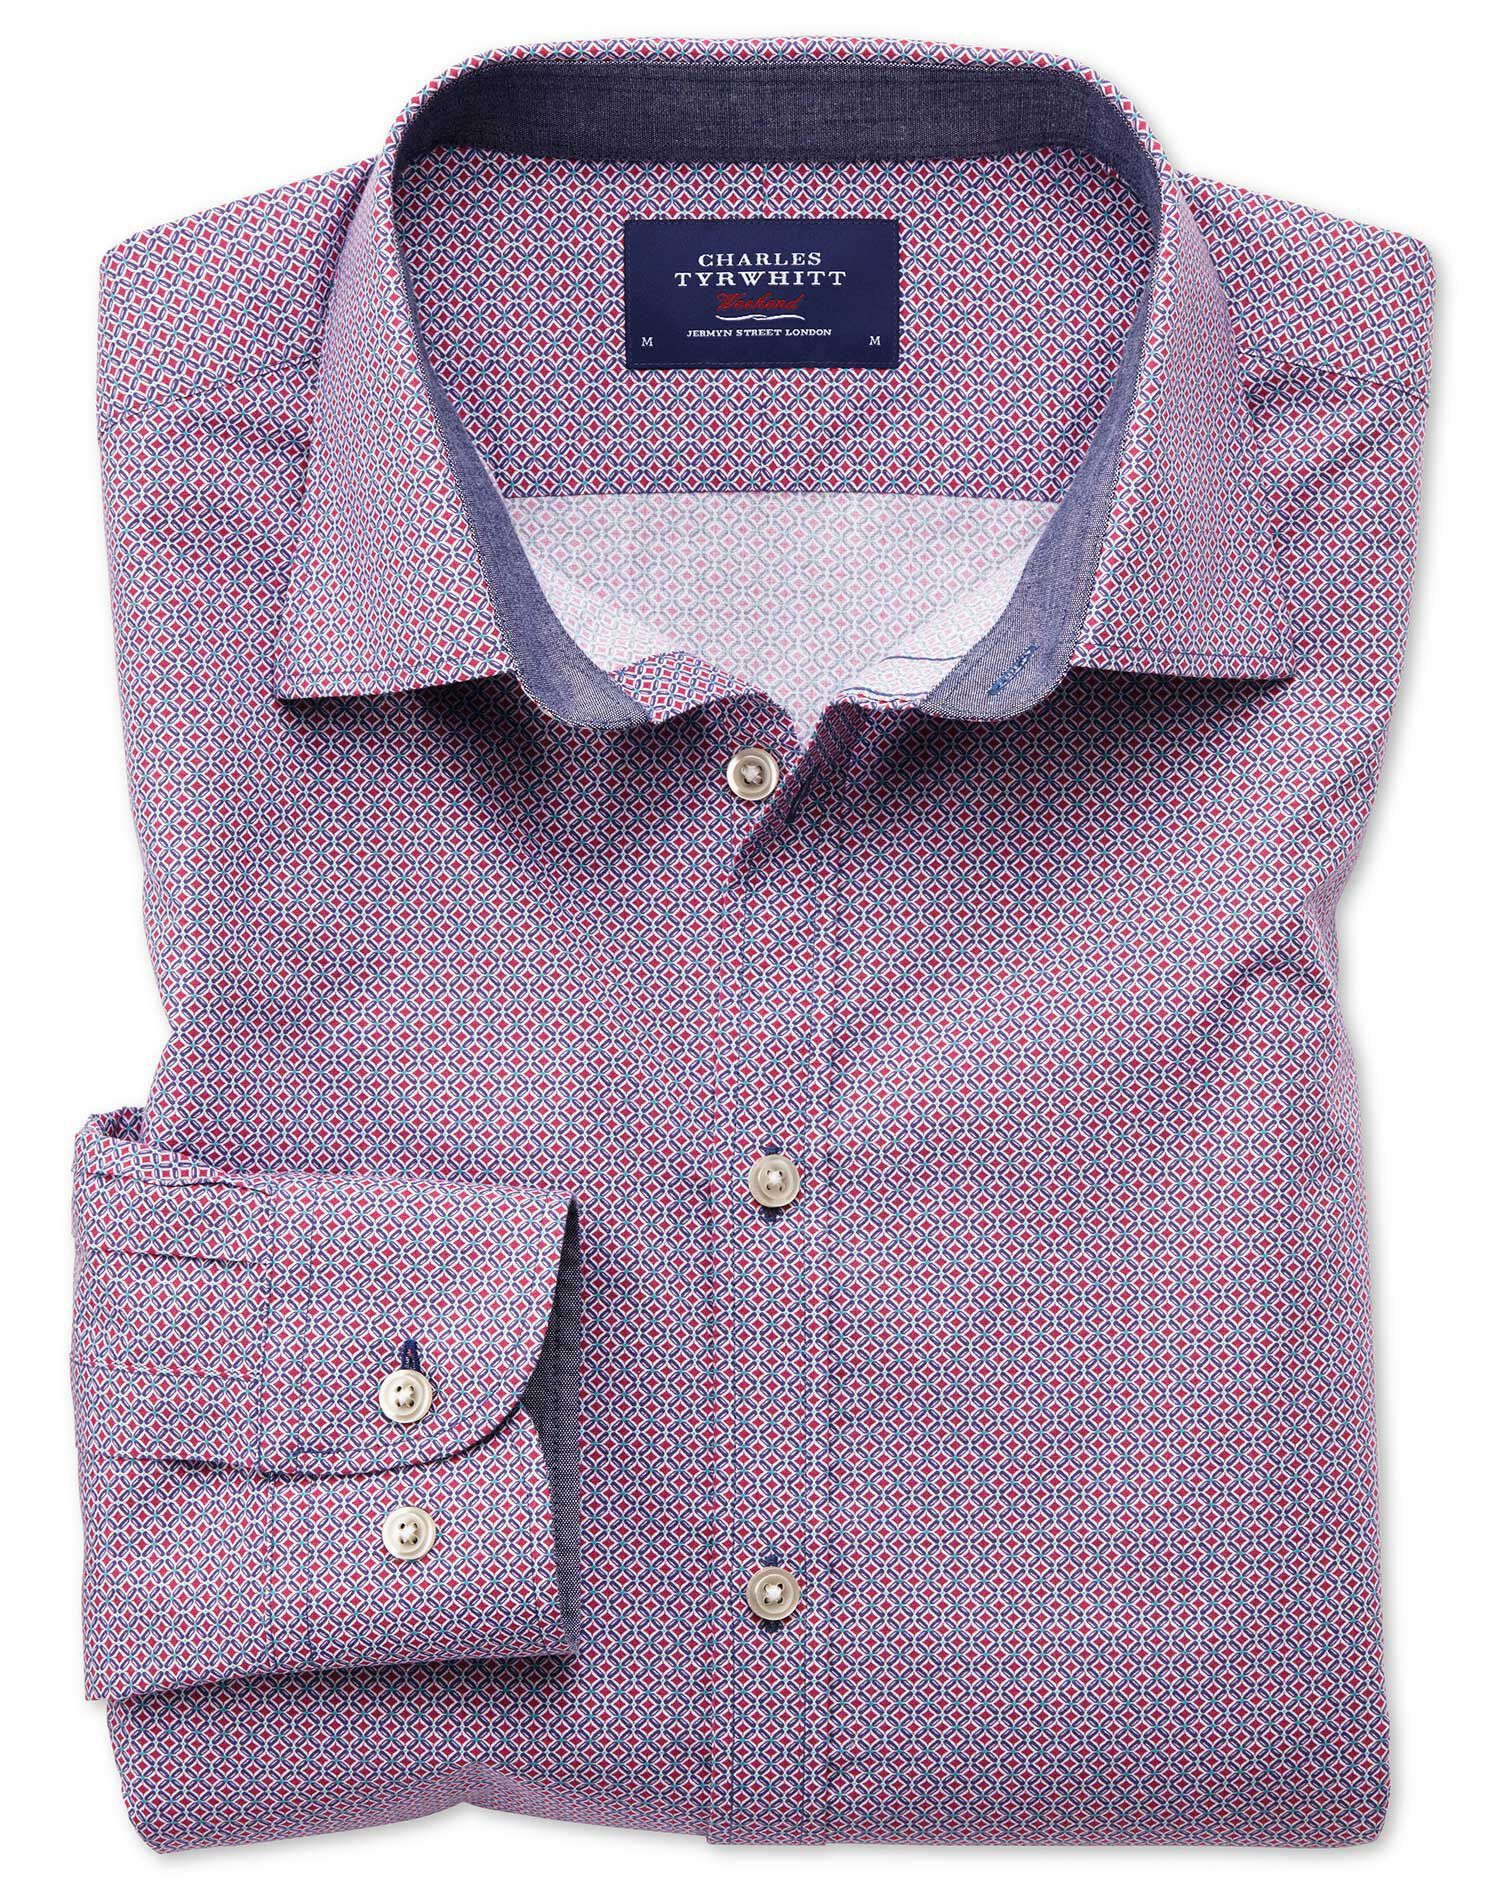 Extra Slim Fit Magenta and Blue Print Cotton Shirt Single Cuff Size Large by Charles Tyrwhitt